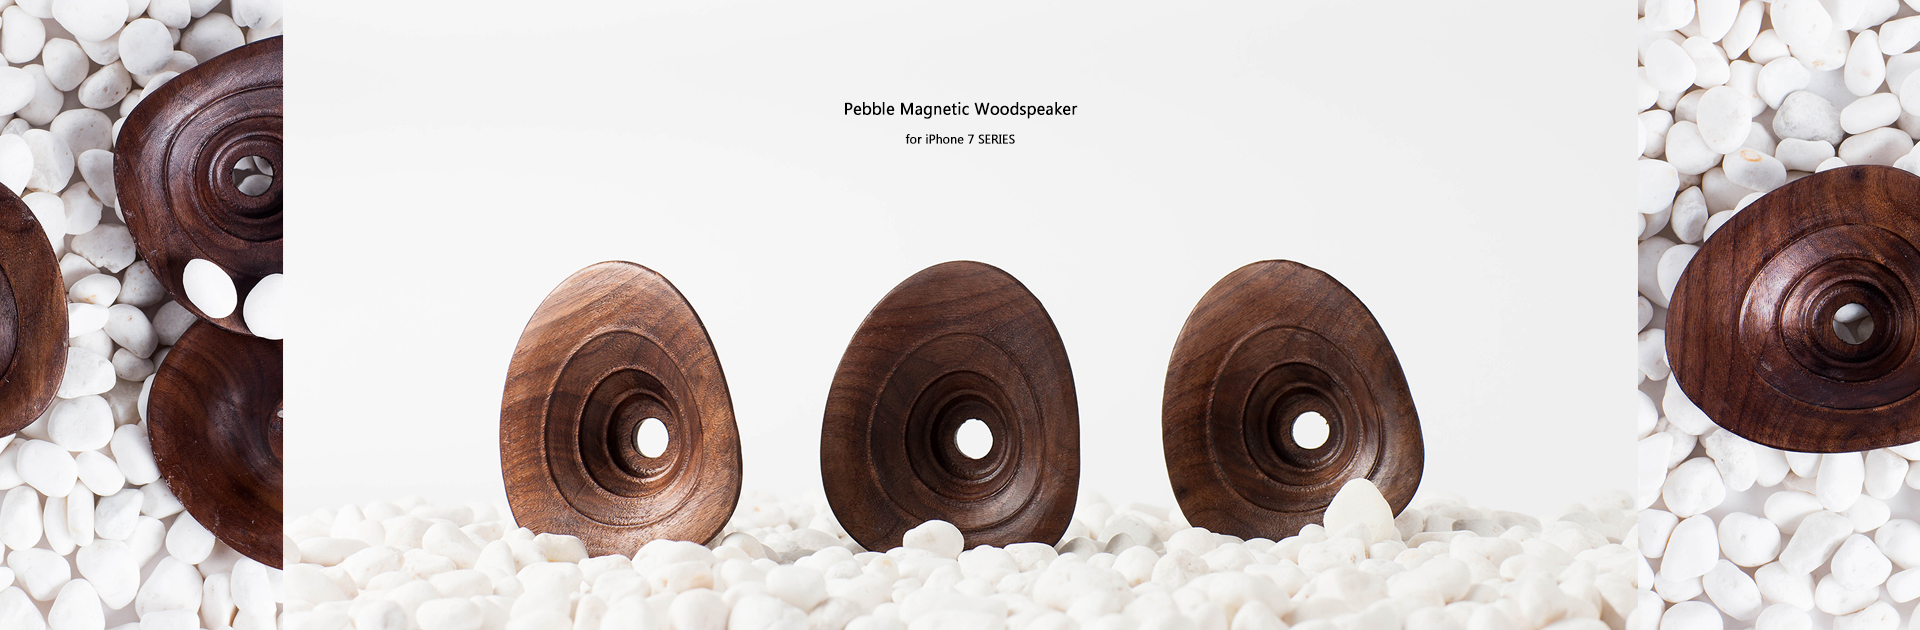 pebble woodspeaker